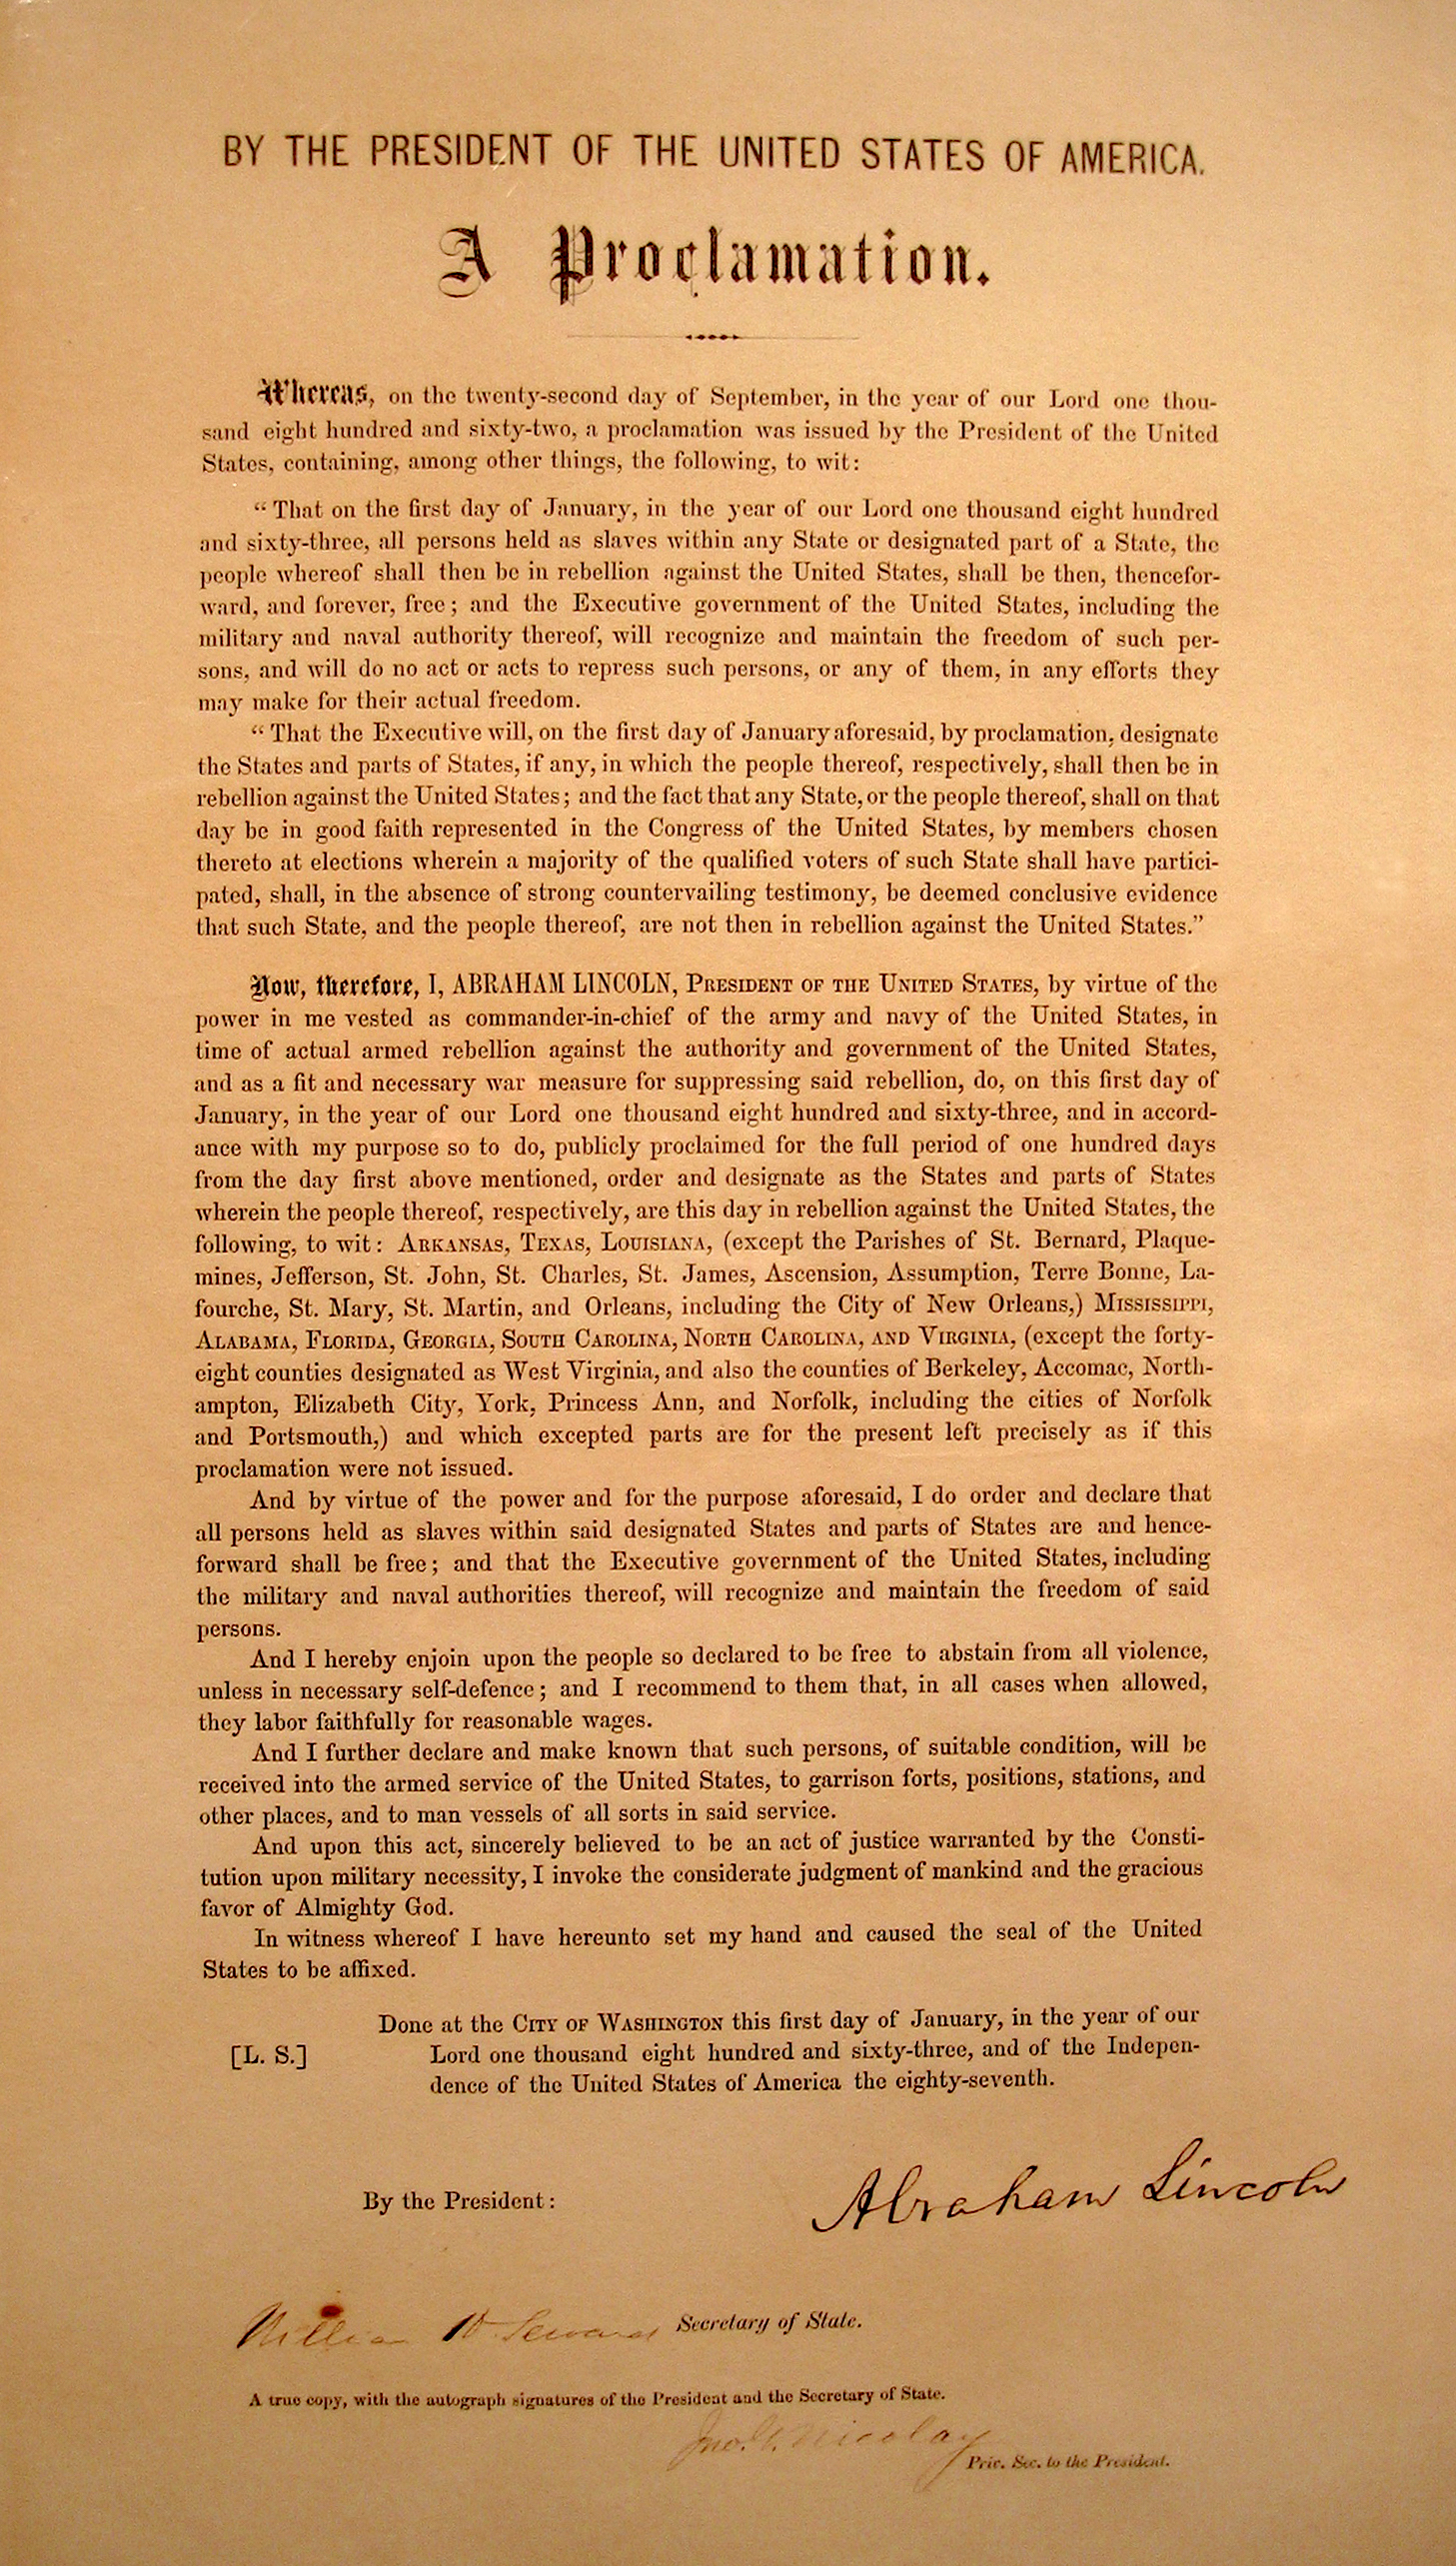 file emancipation proclamation typeset signed jpg  file emancipation proclamation typeset signed jpg